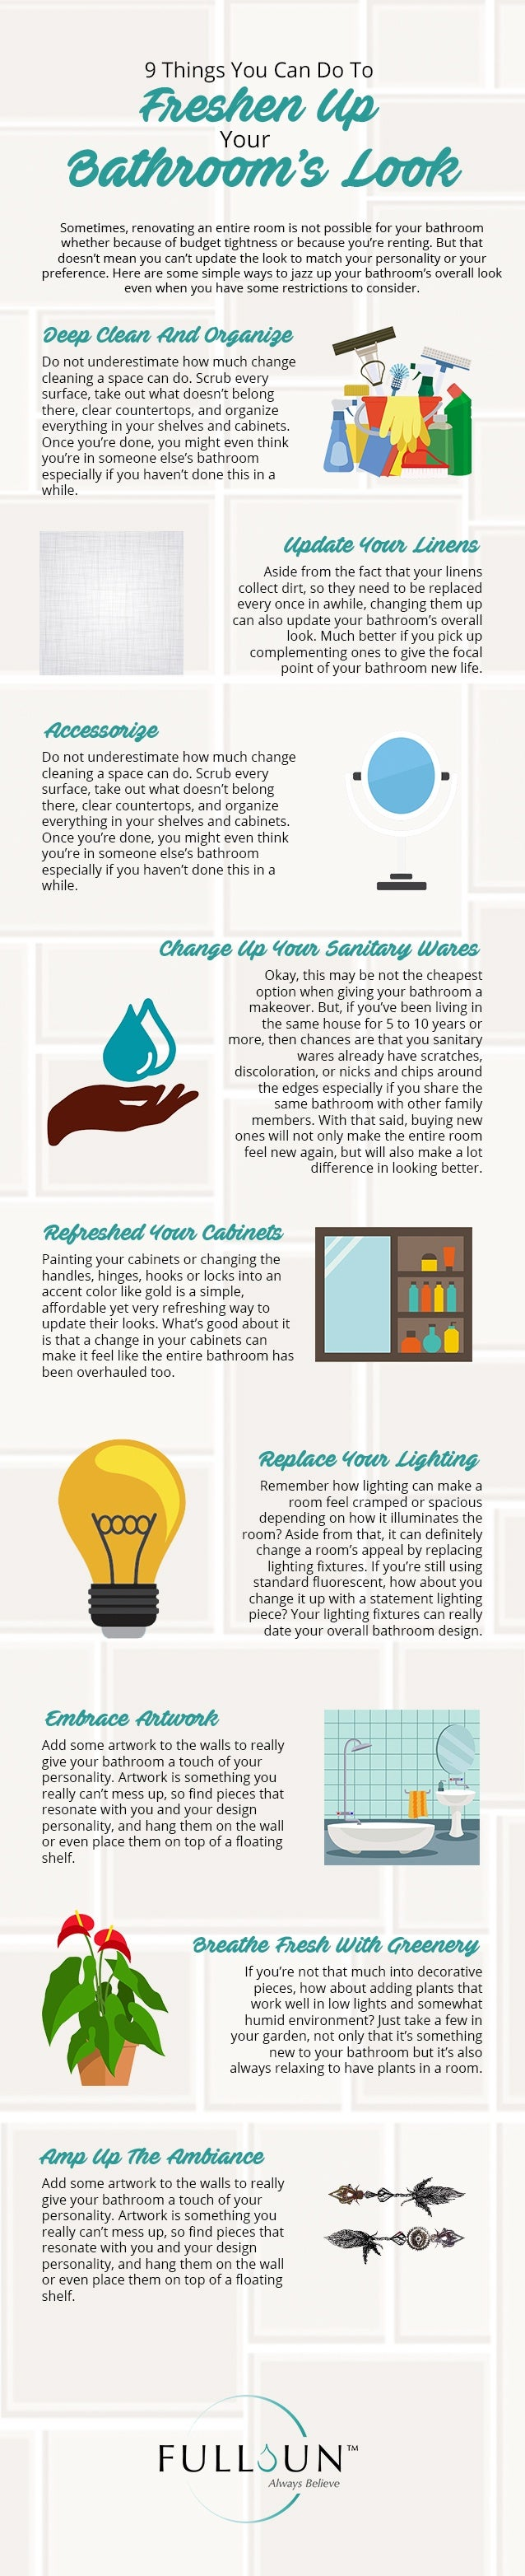 9 Things You Can Do To Freshen Up Your Bathroom's Look